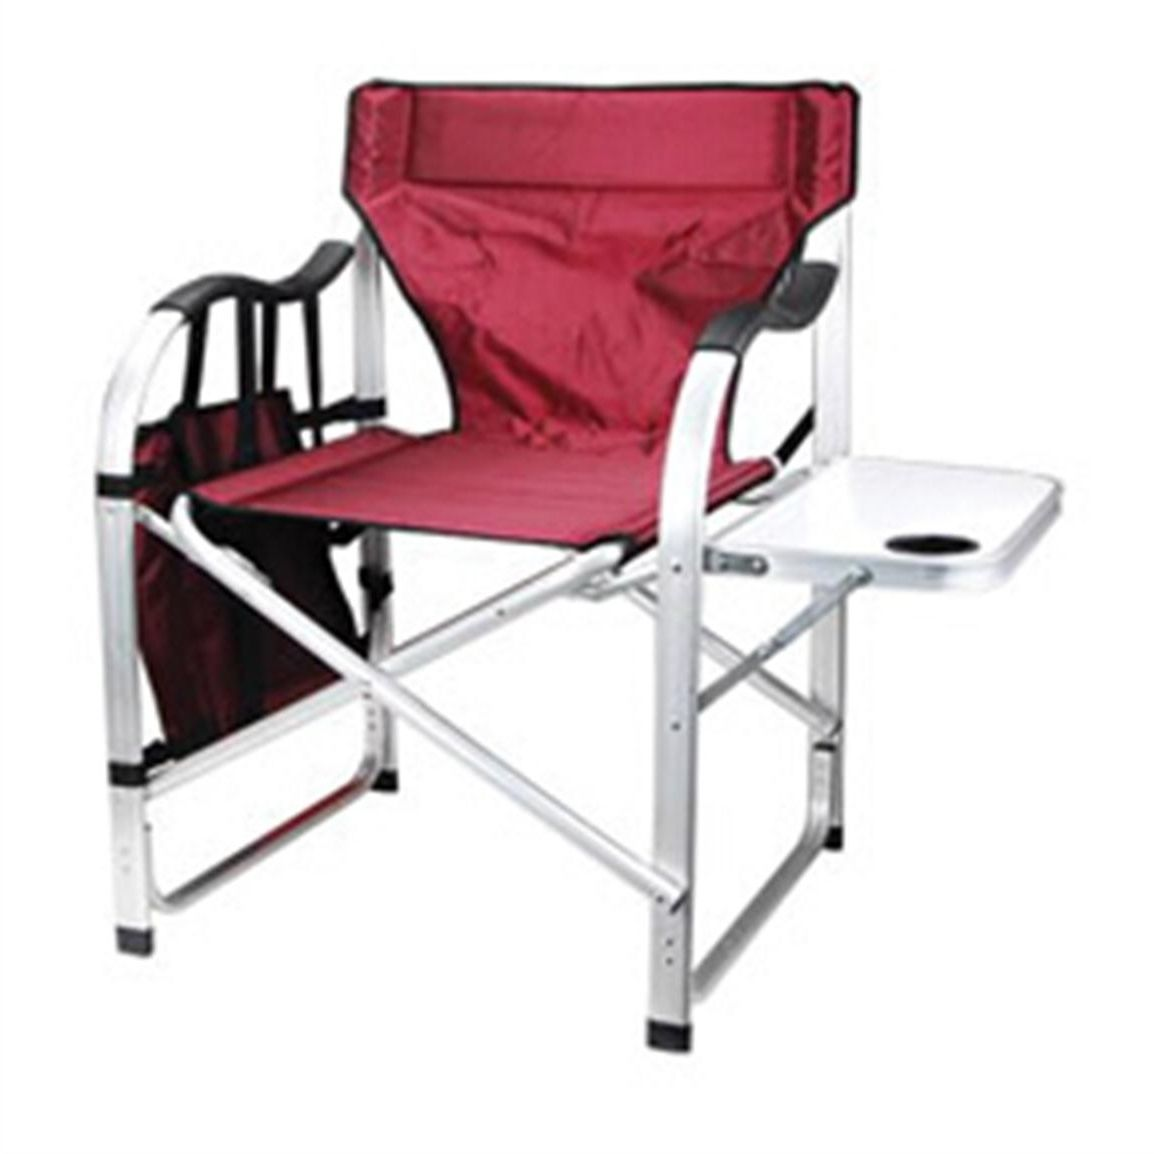 Maccabee Folding Directors Chair Camping Chairs Burgundy